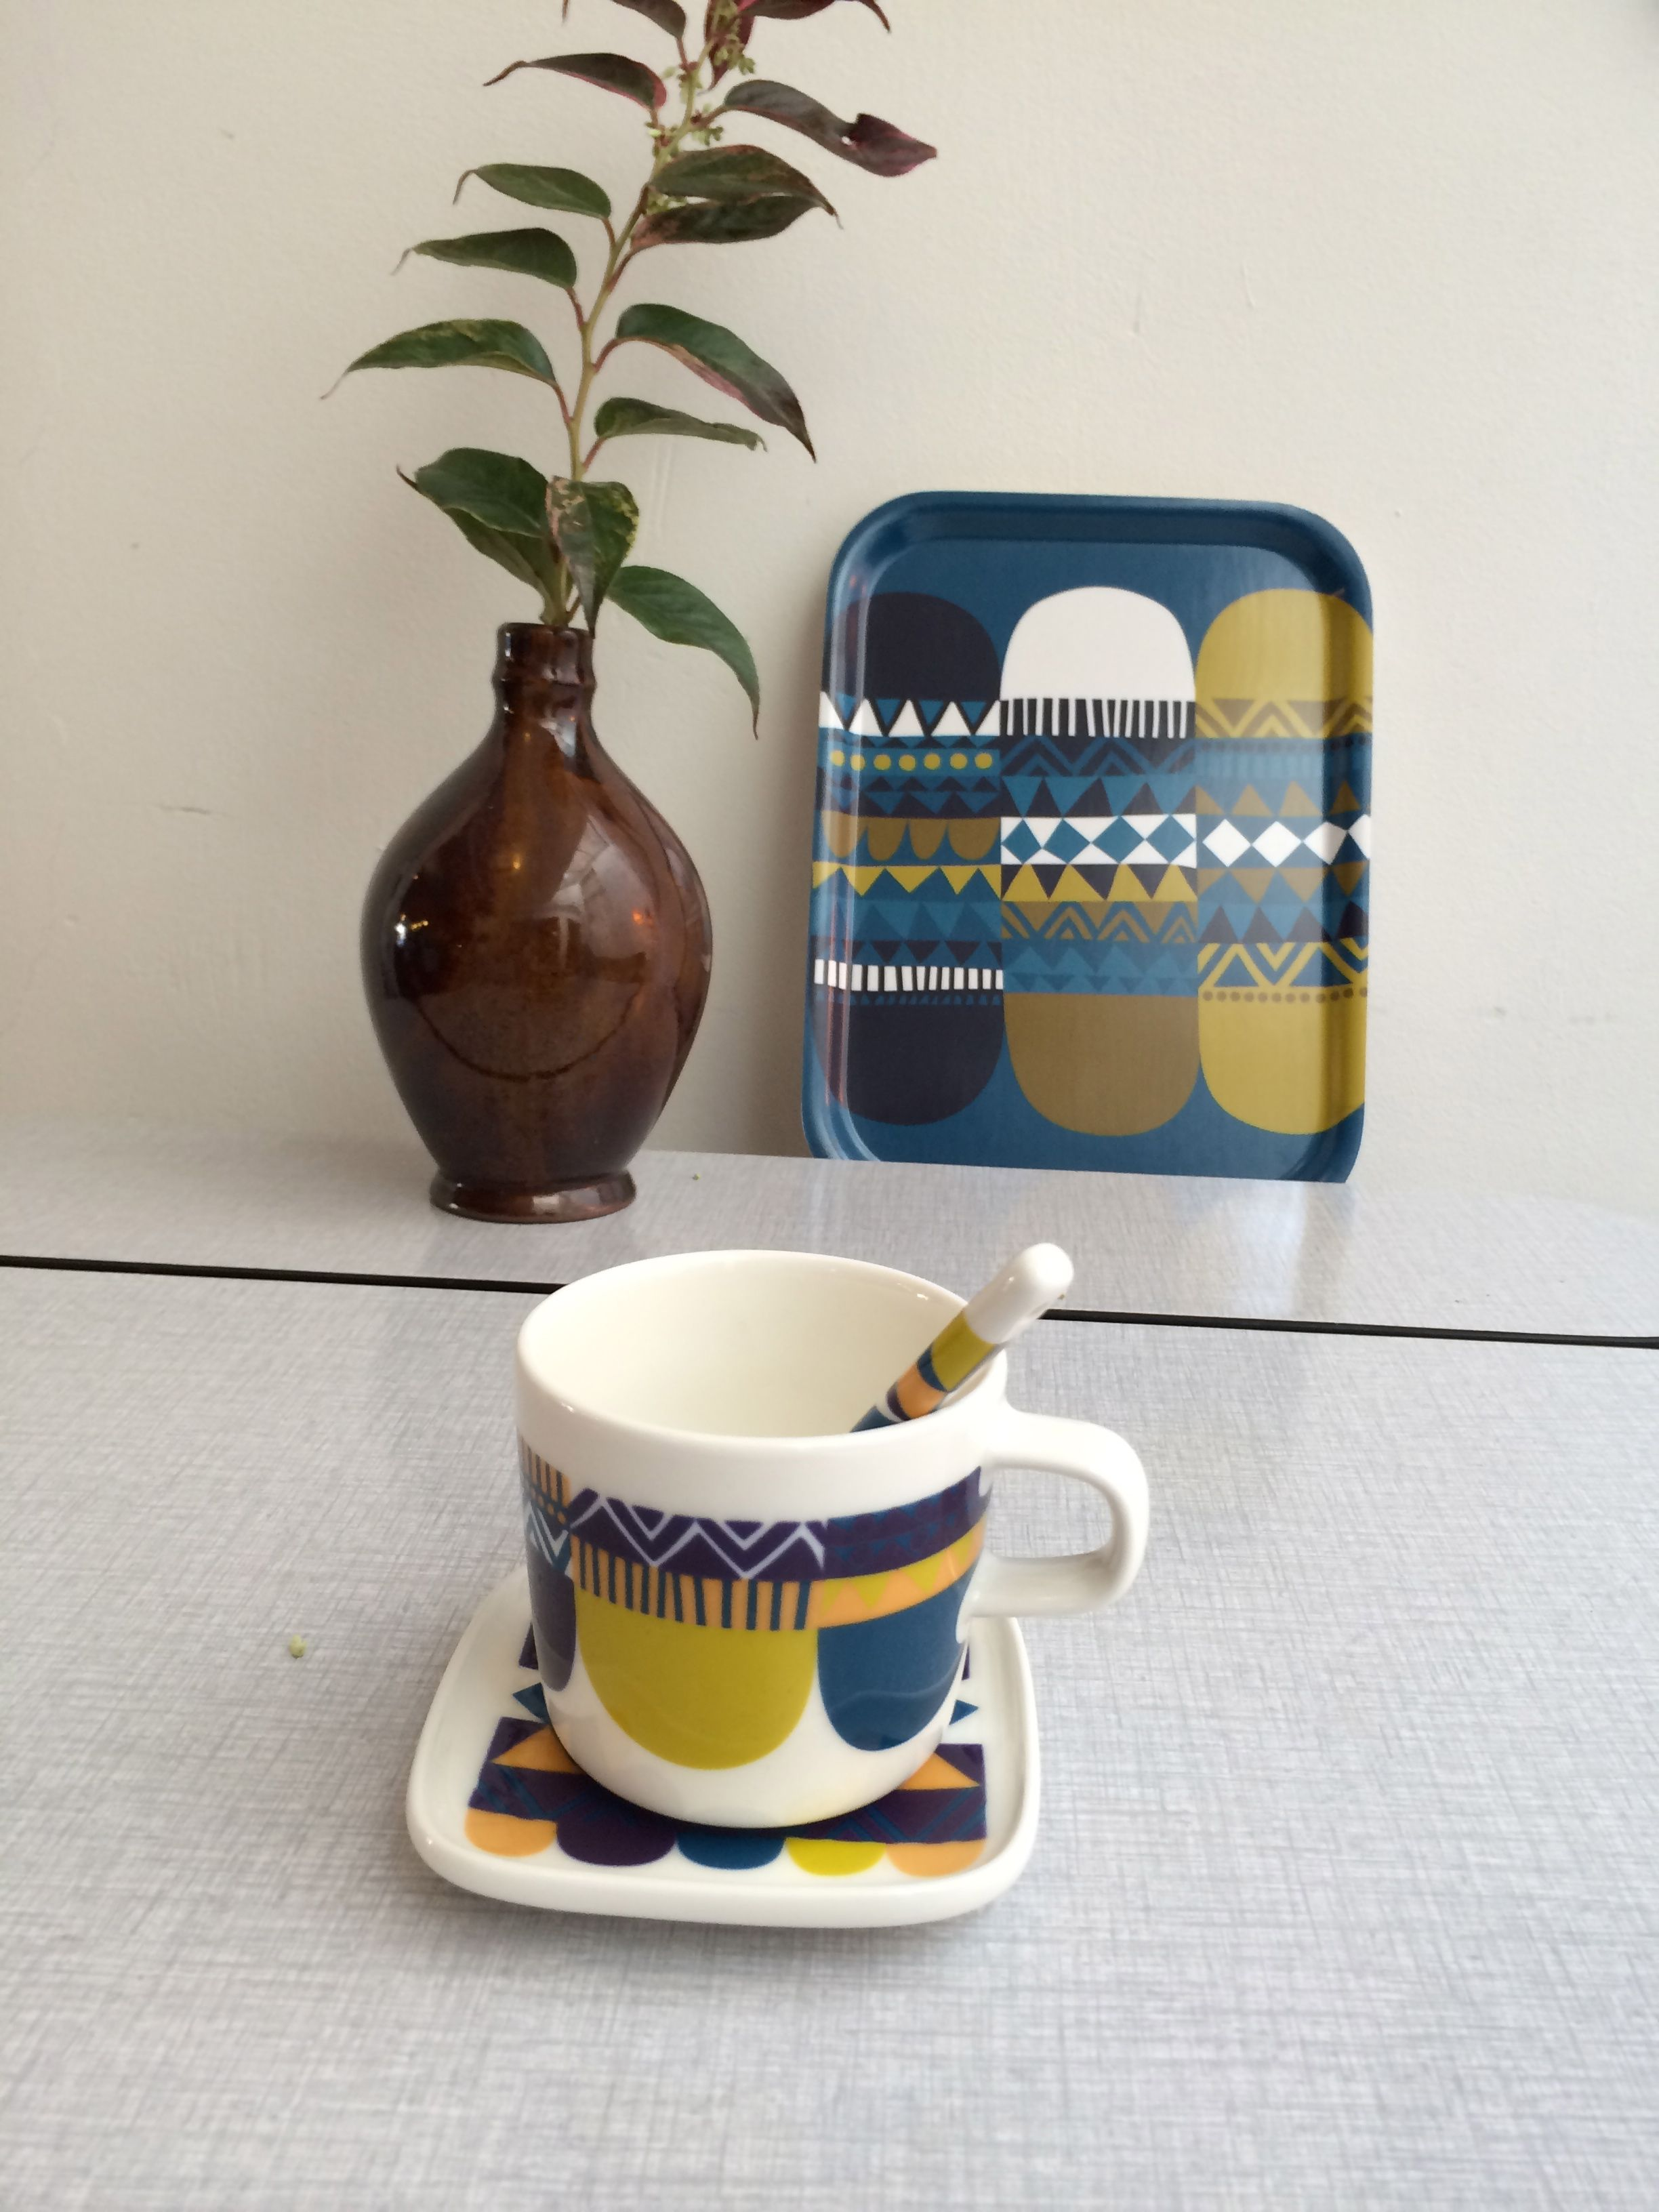 Marimekko servies. Marimekko tableware Oiva / L&pup&ula is a series designed by Sanna Annukka for Finnish label Marimekko. In stores end of 2014. & Marimekko servies. Marimekko tableware Oiva / Lamppupampula is a ...